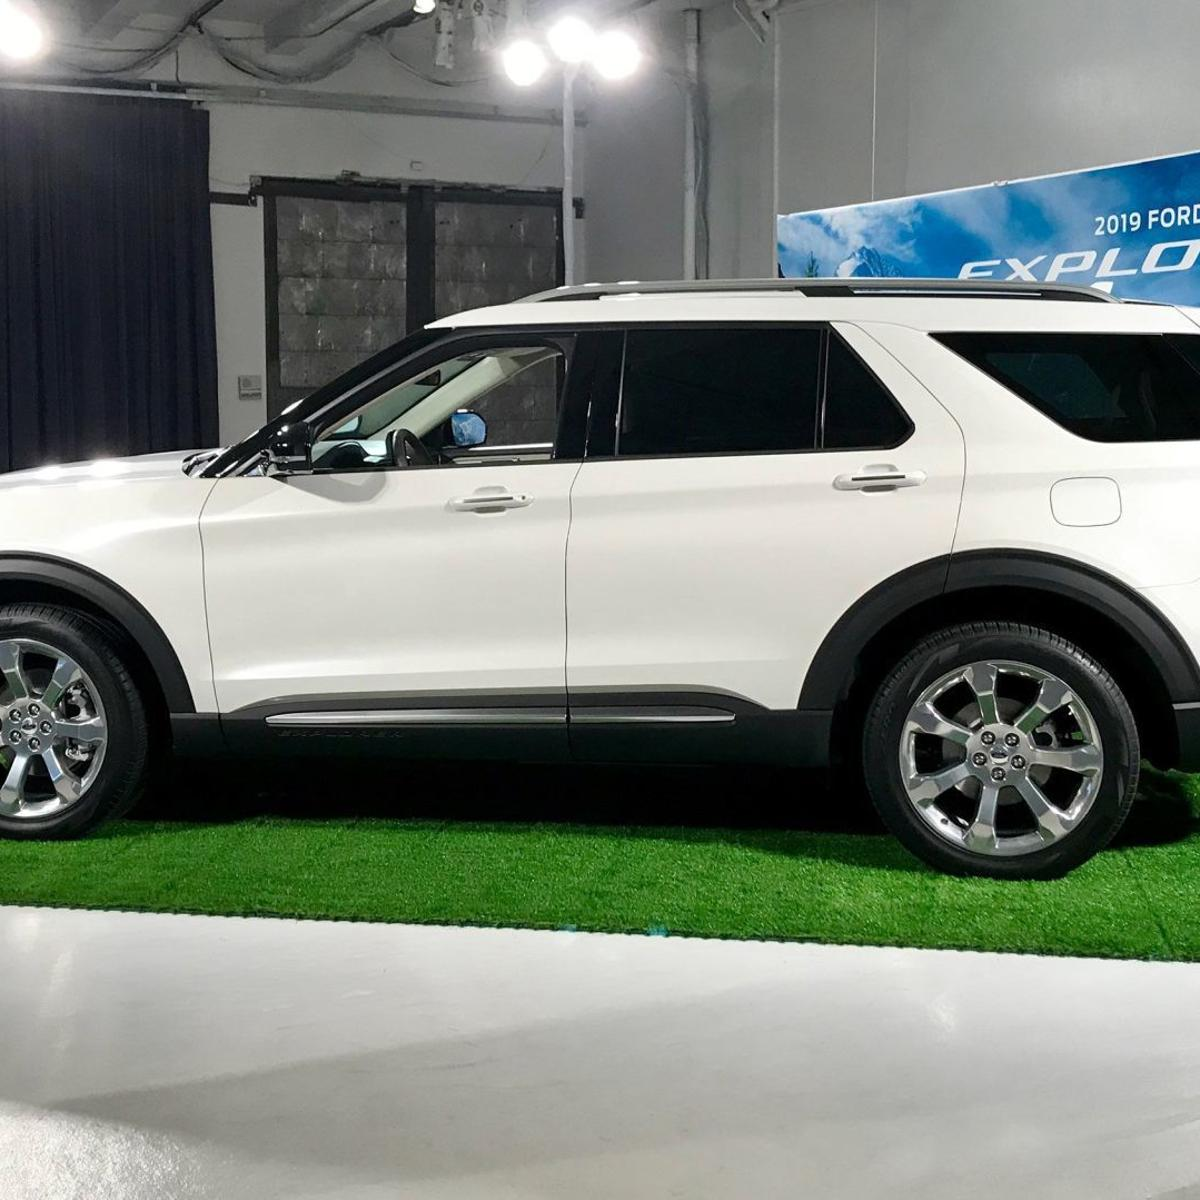 Best Selling Car Of All Time >> The Best Selling Suv Of All Time Is Getting A Redesign